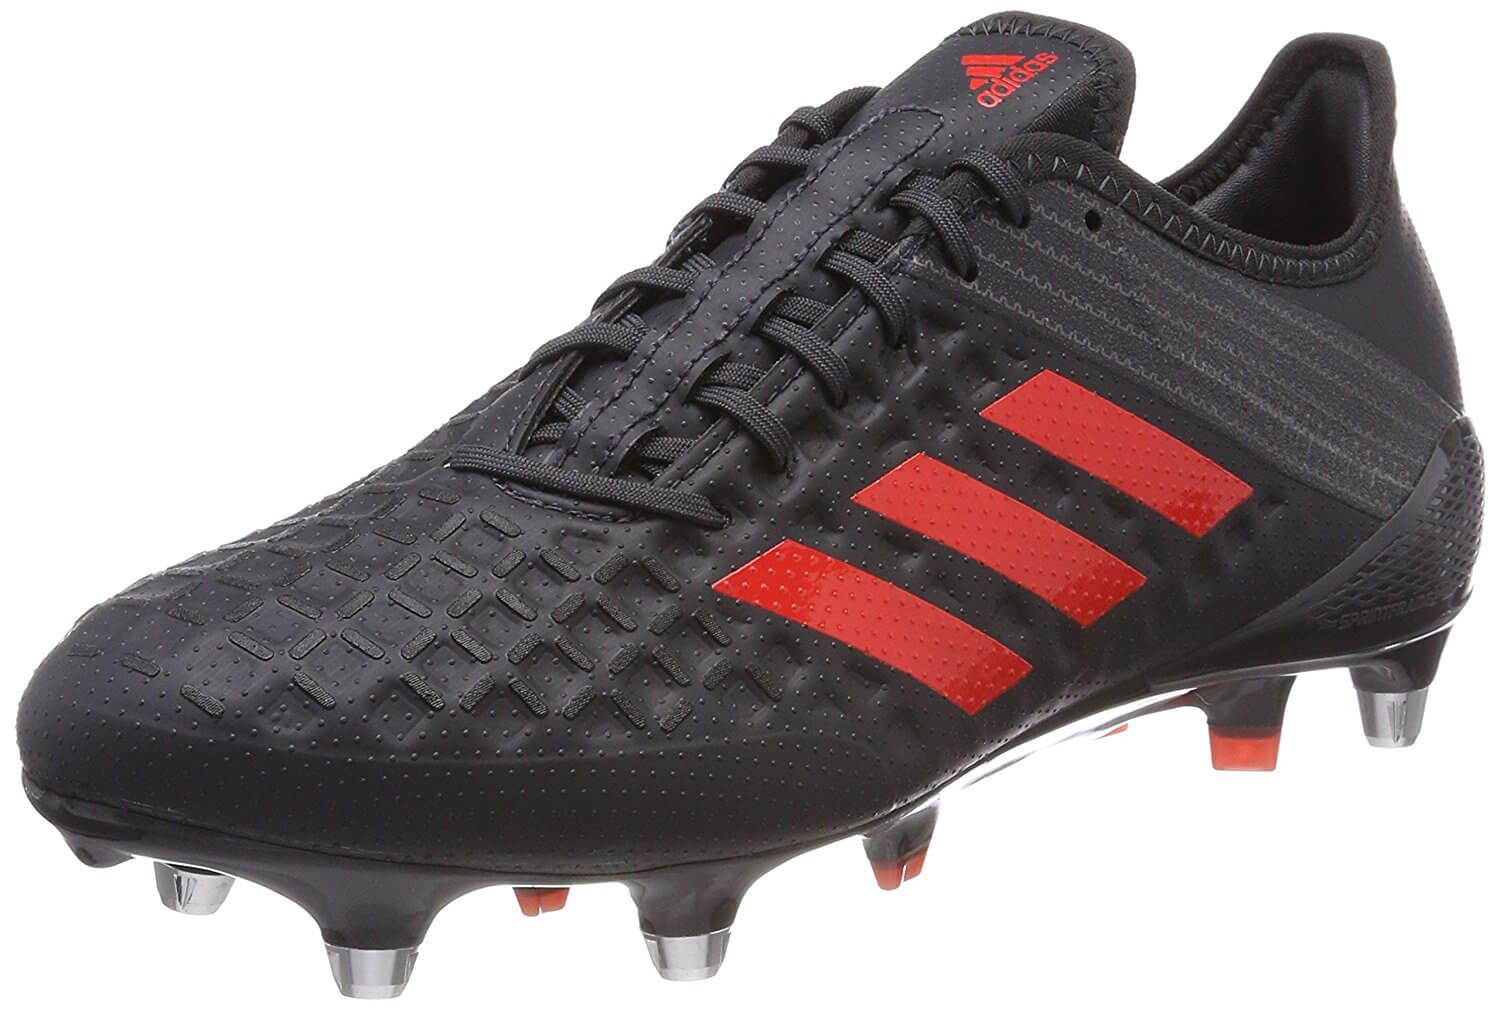 half off 19df1 8d624 Predator Malice SG Rugby Boots Review